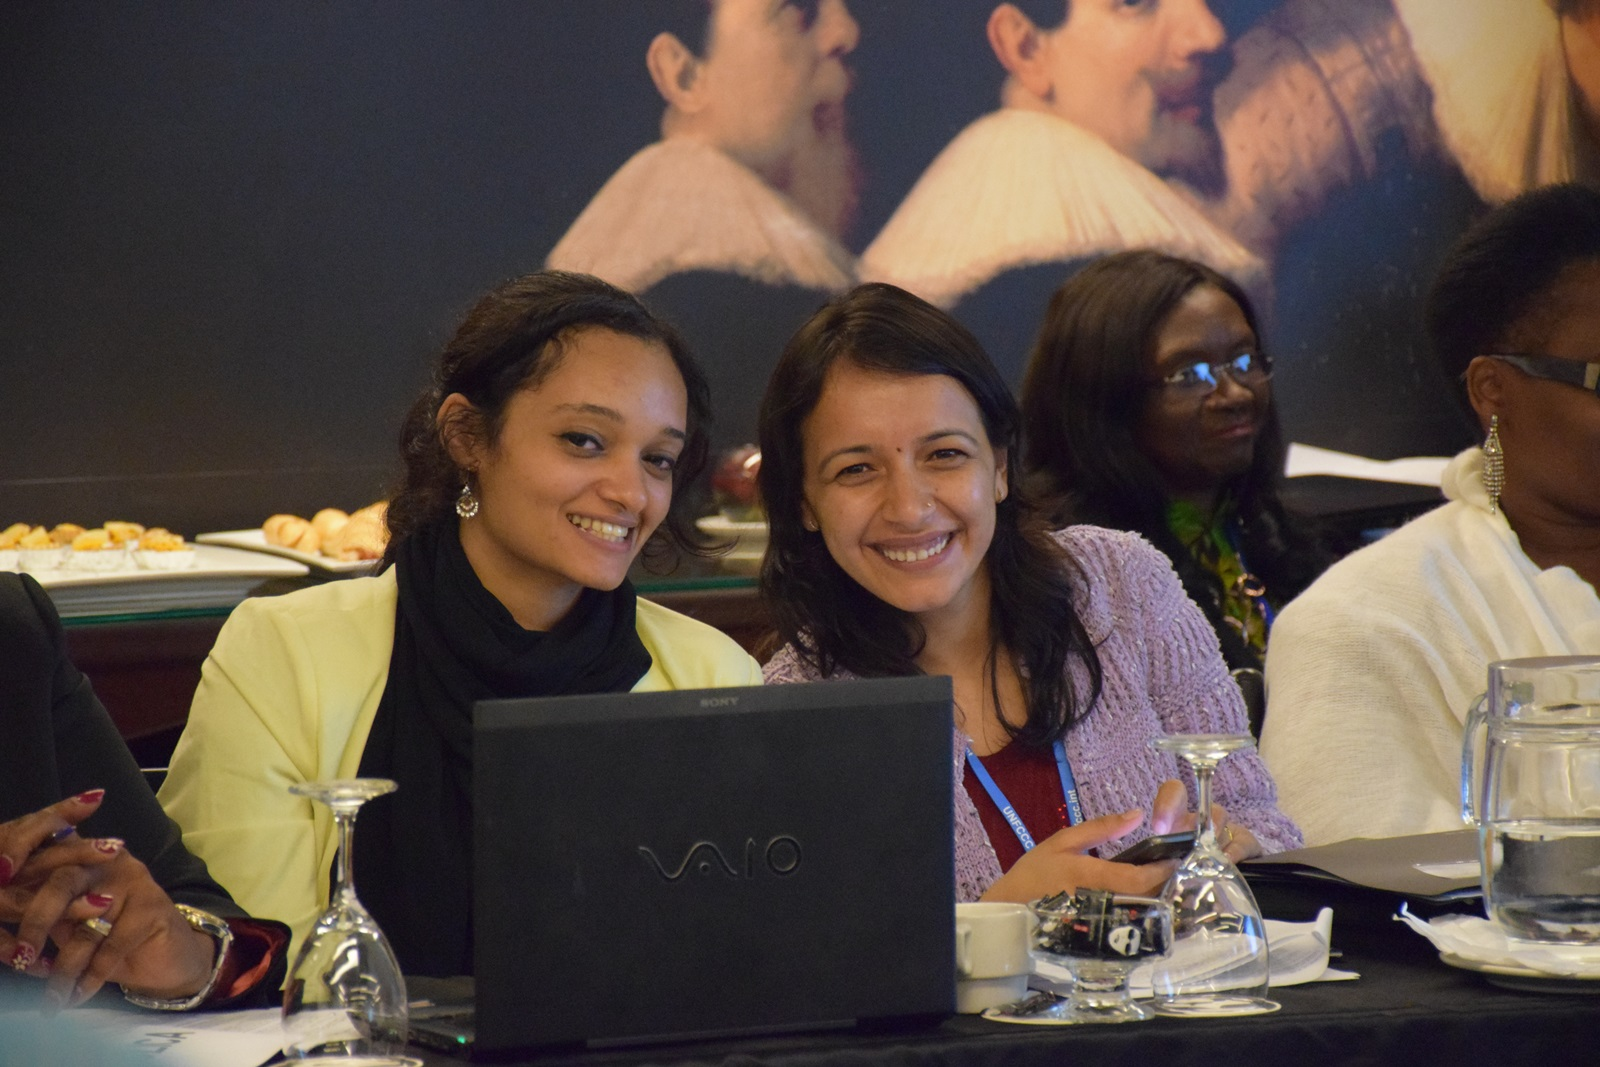 Travel Funds for Women Advocates to Participate in UNFCCC Meetings 2015 in Germany and Paris